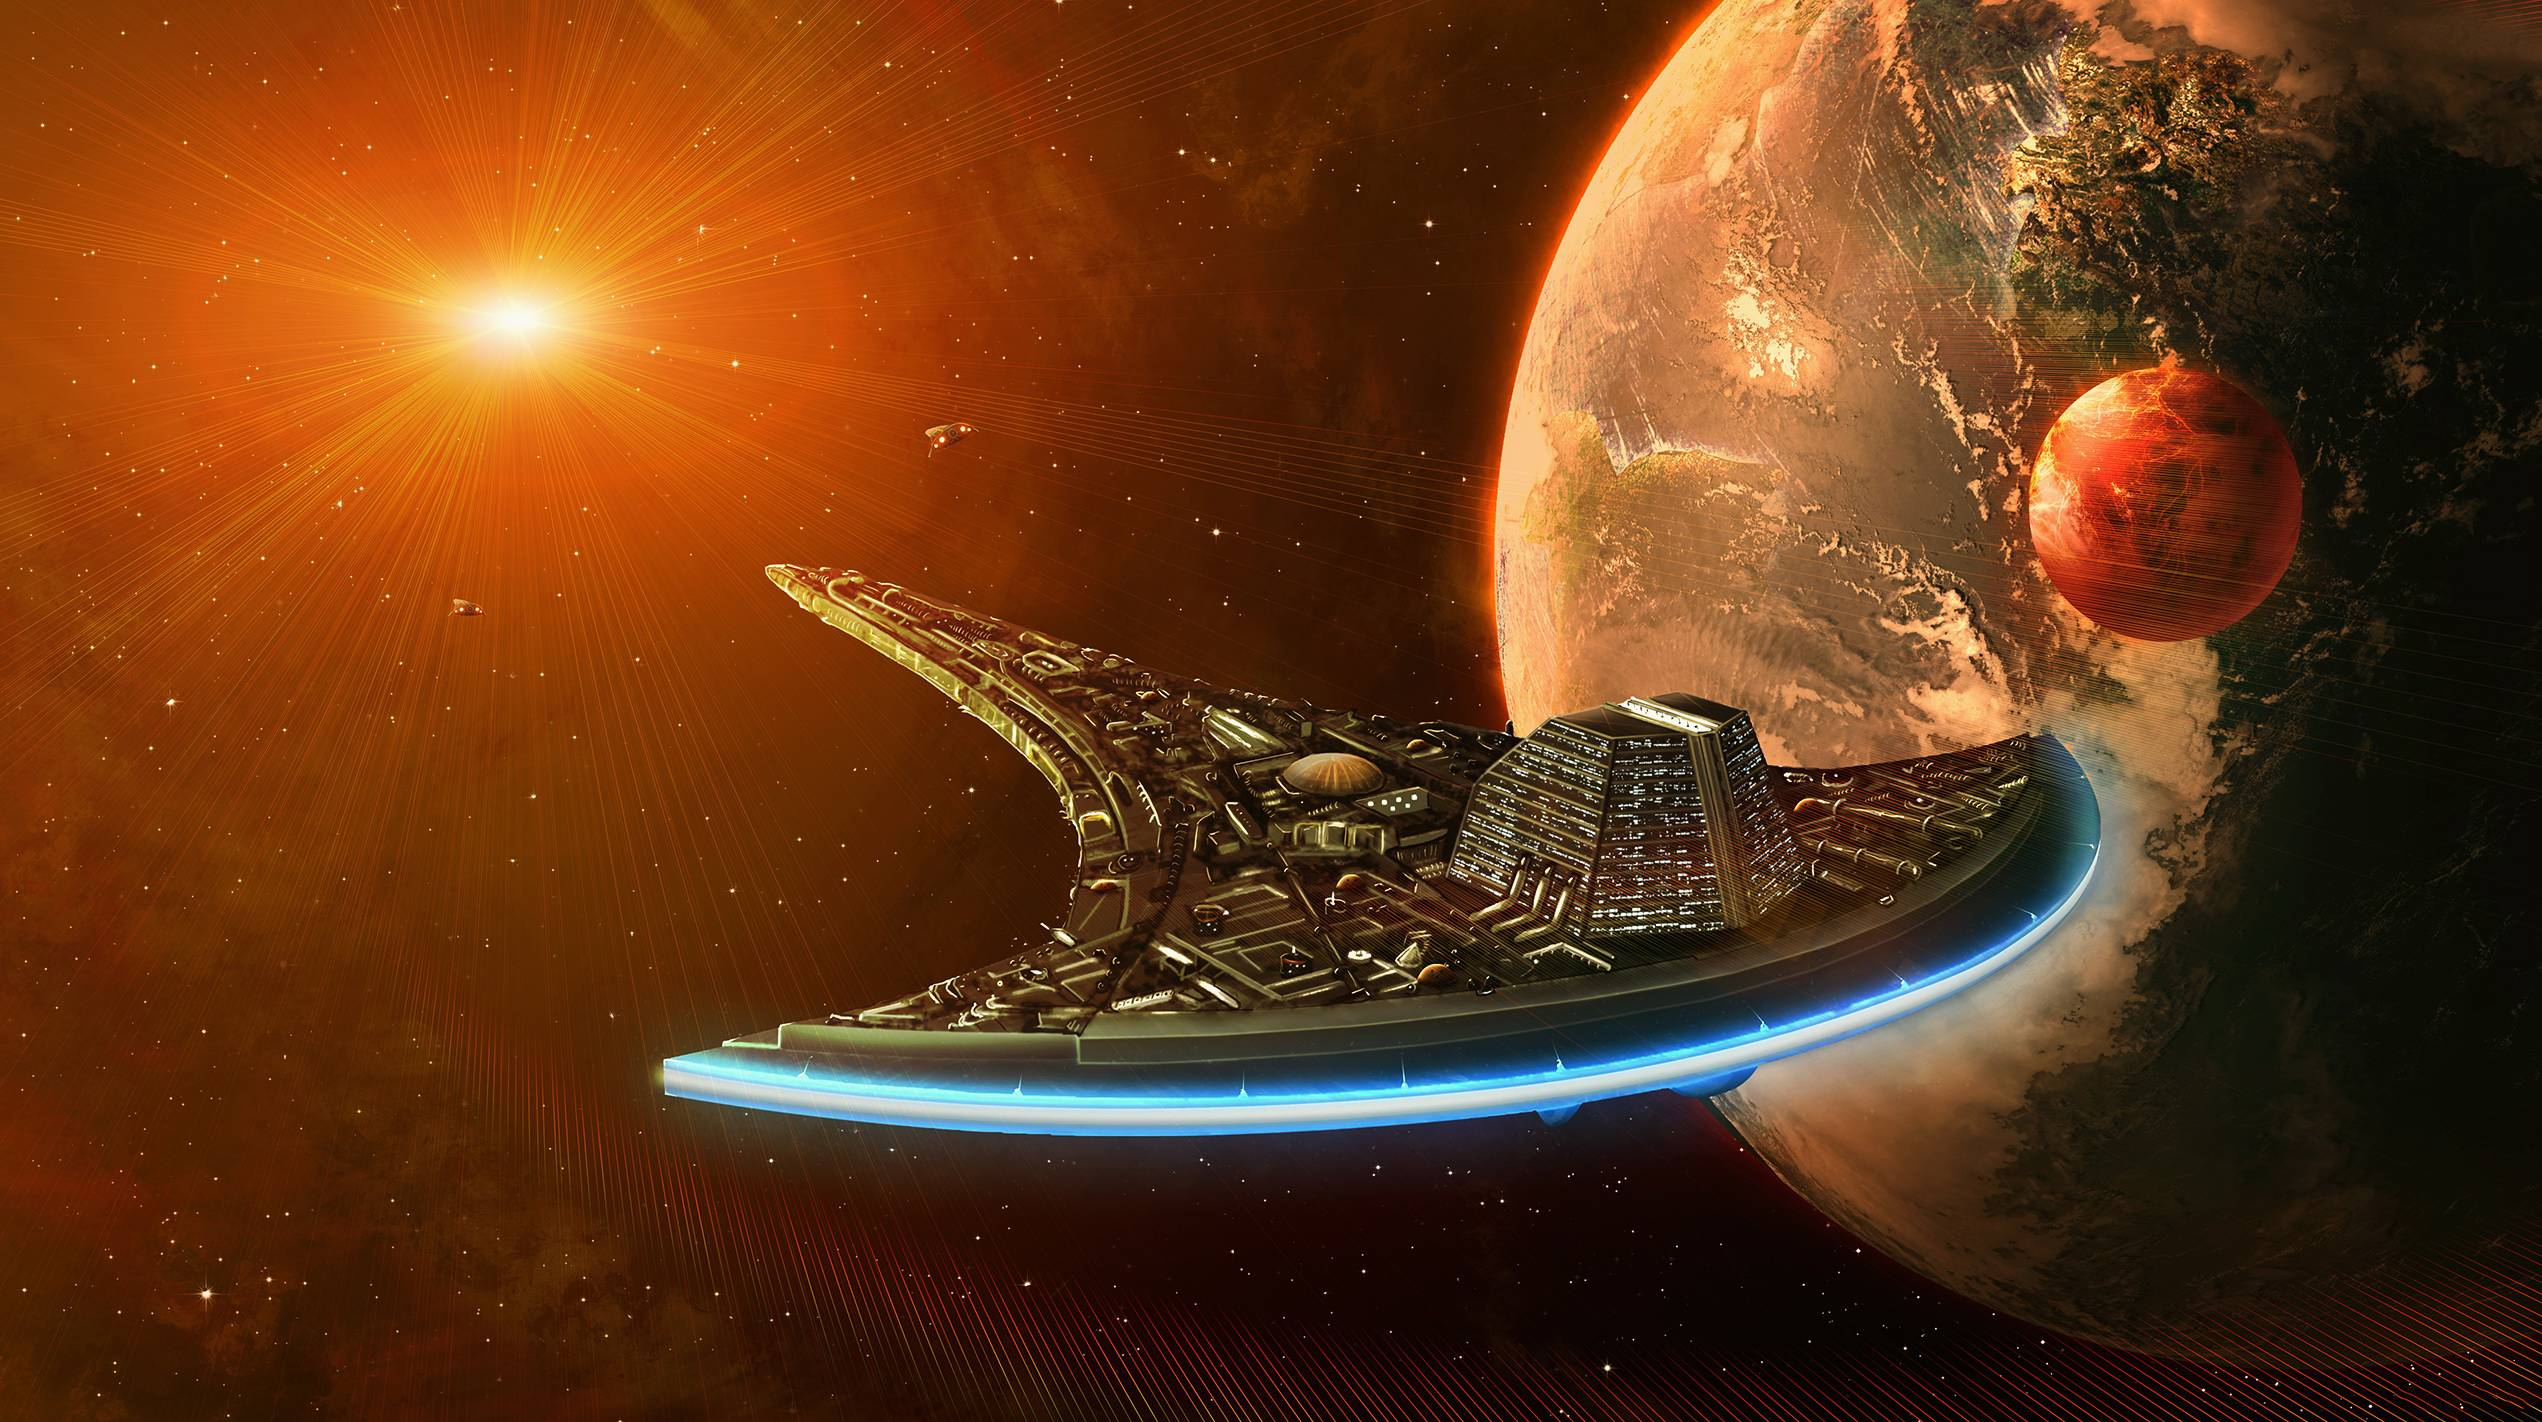 stargate wallpaper universe space - photo #11